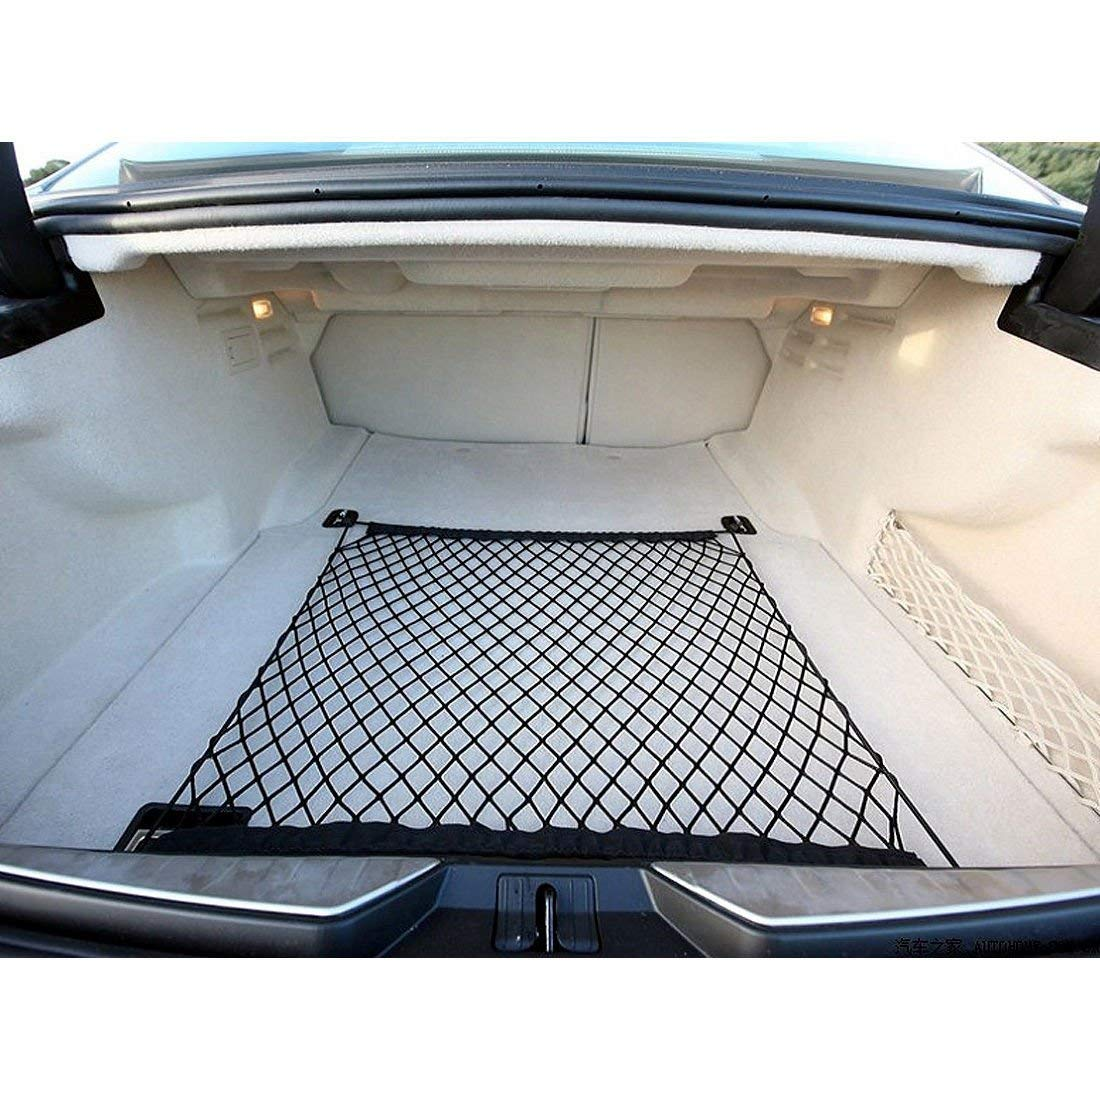 Cheap Cargo Net For Car Trunk, Find Cargo Net For Car